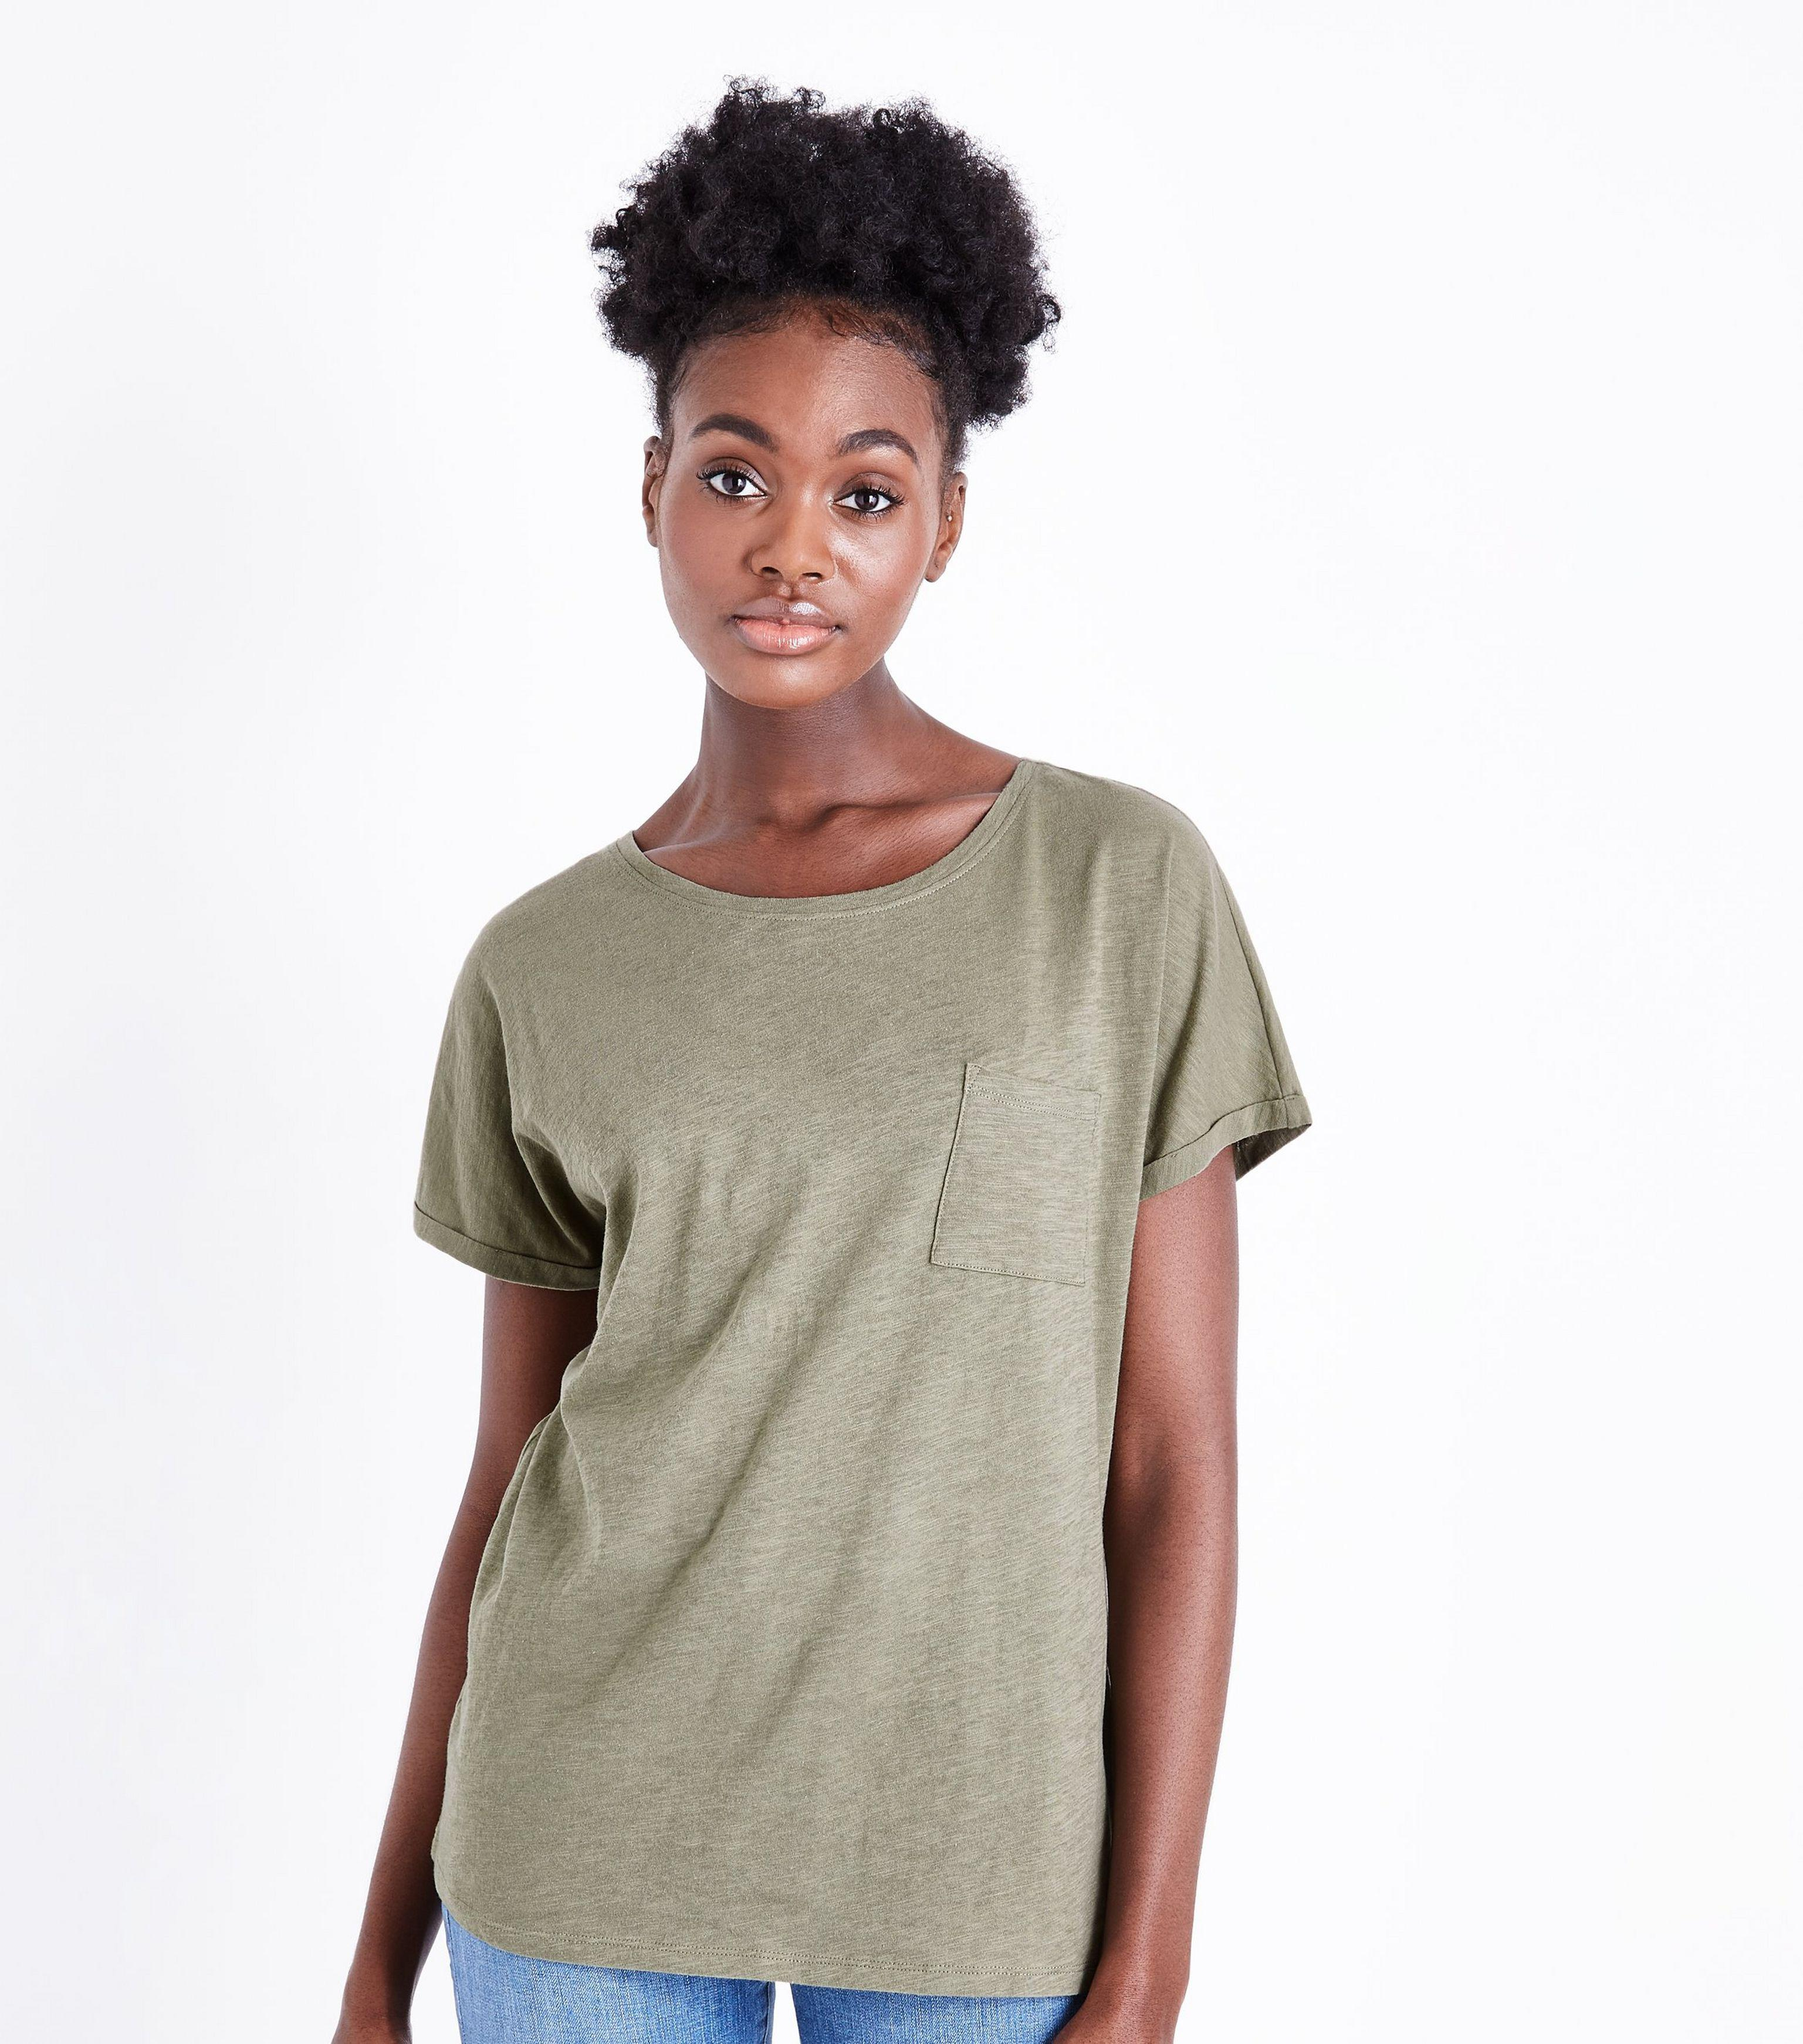 830bb421392a New Look Tall Olive Organic Cotton Pocket Front T-shirt in Green - Lyst